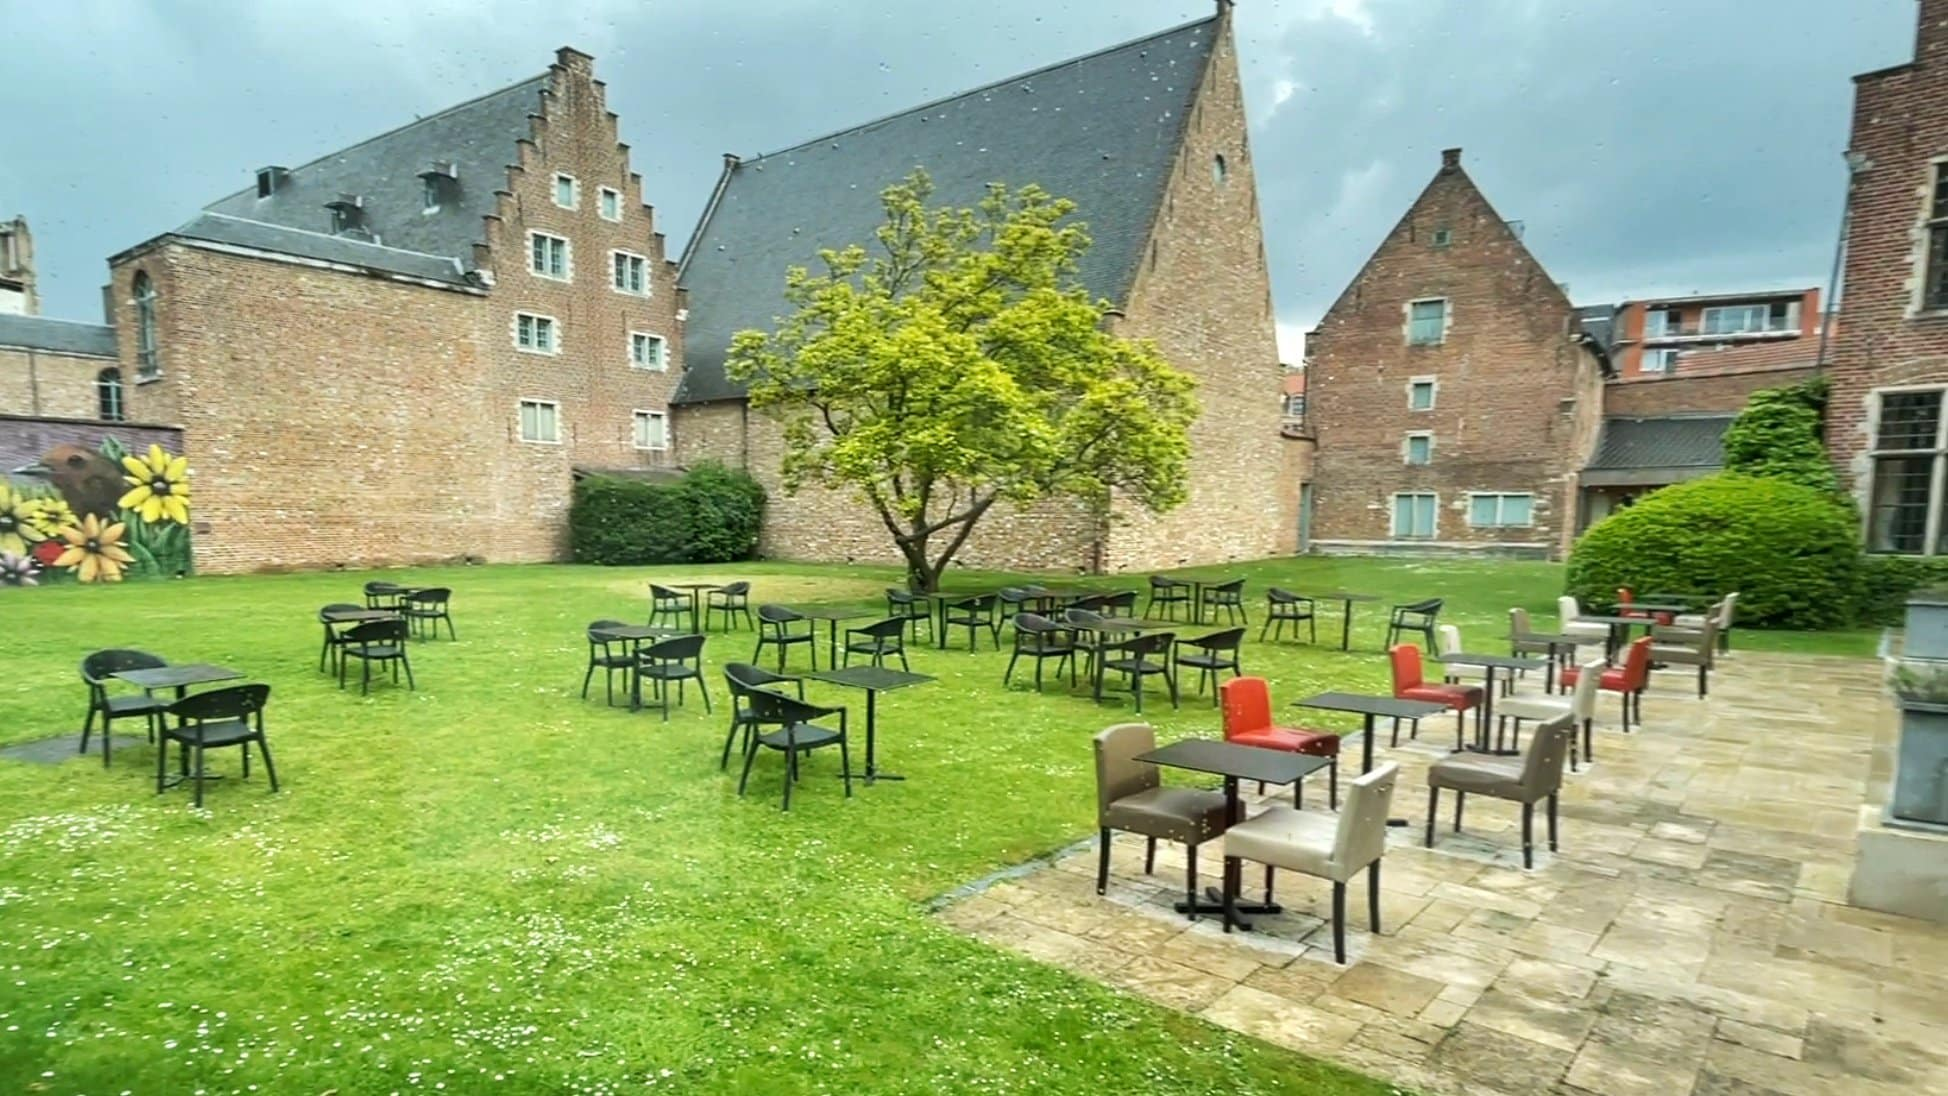 If you ask us Martin's Klooster hotel is the perfect place to stay if you want to visit Leuven.